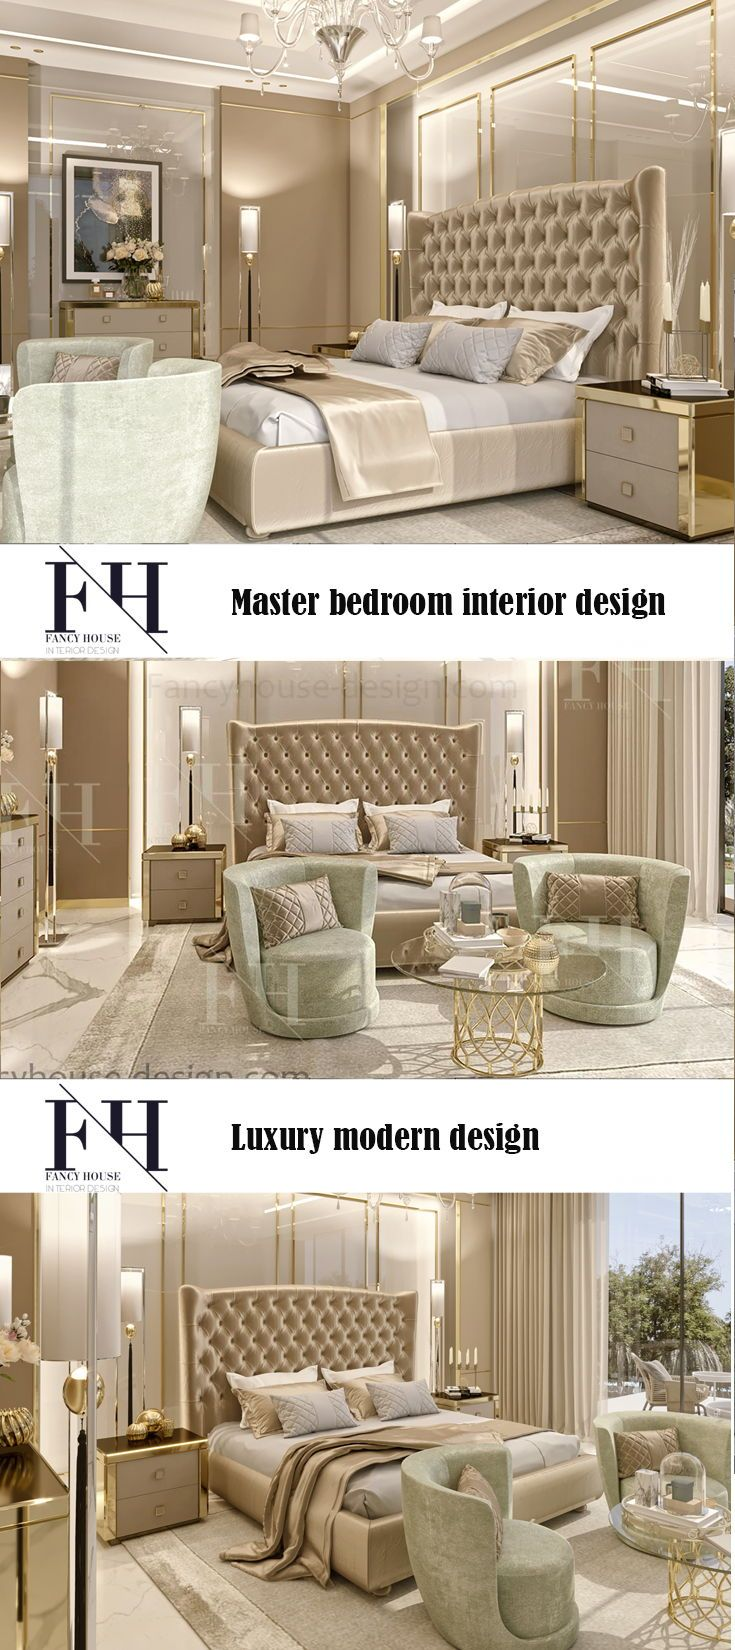 Beautiful Interior Design For Luxury Houses In With A Beautiful Bed The Interior Decoration Luxury Bedroom Design Bedroom Design Gold Interior Design Bedroom